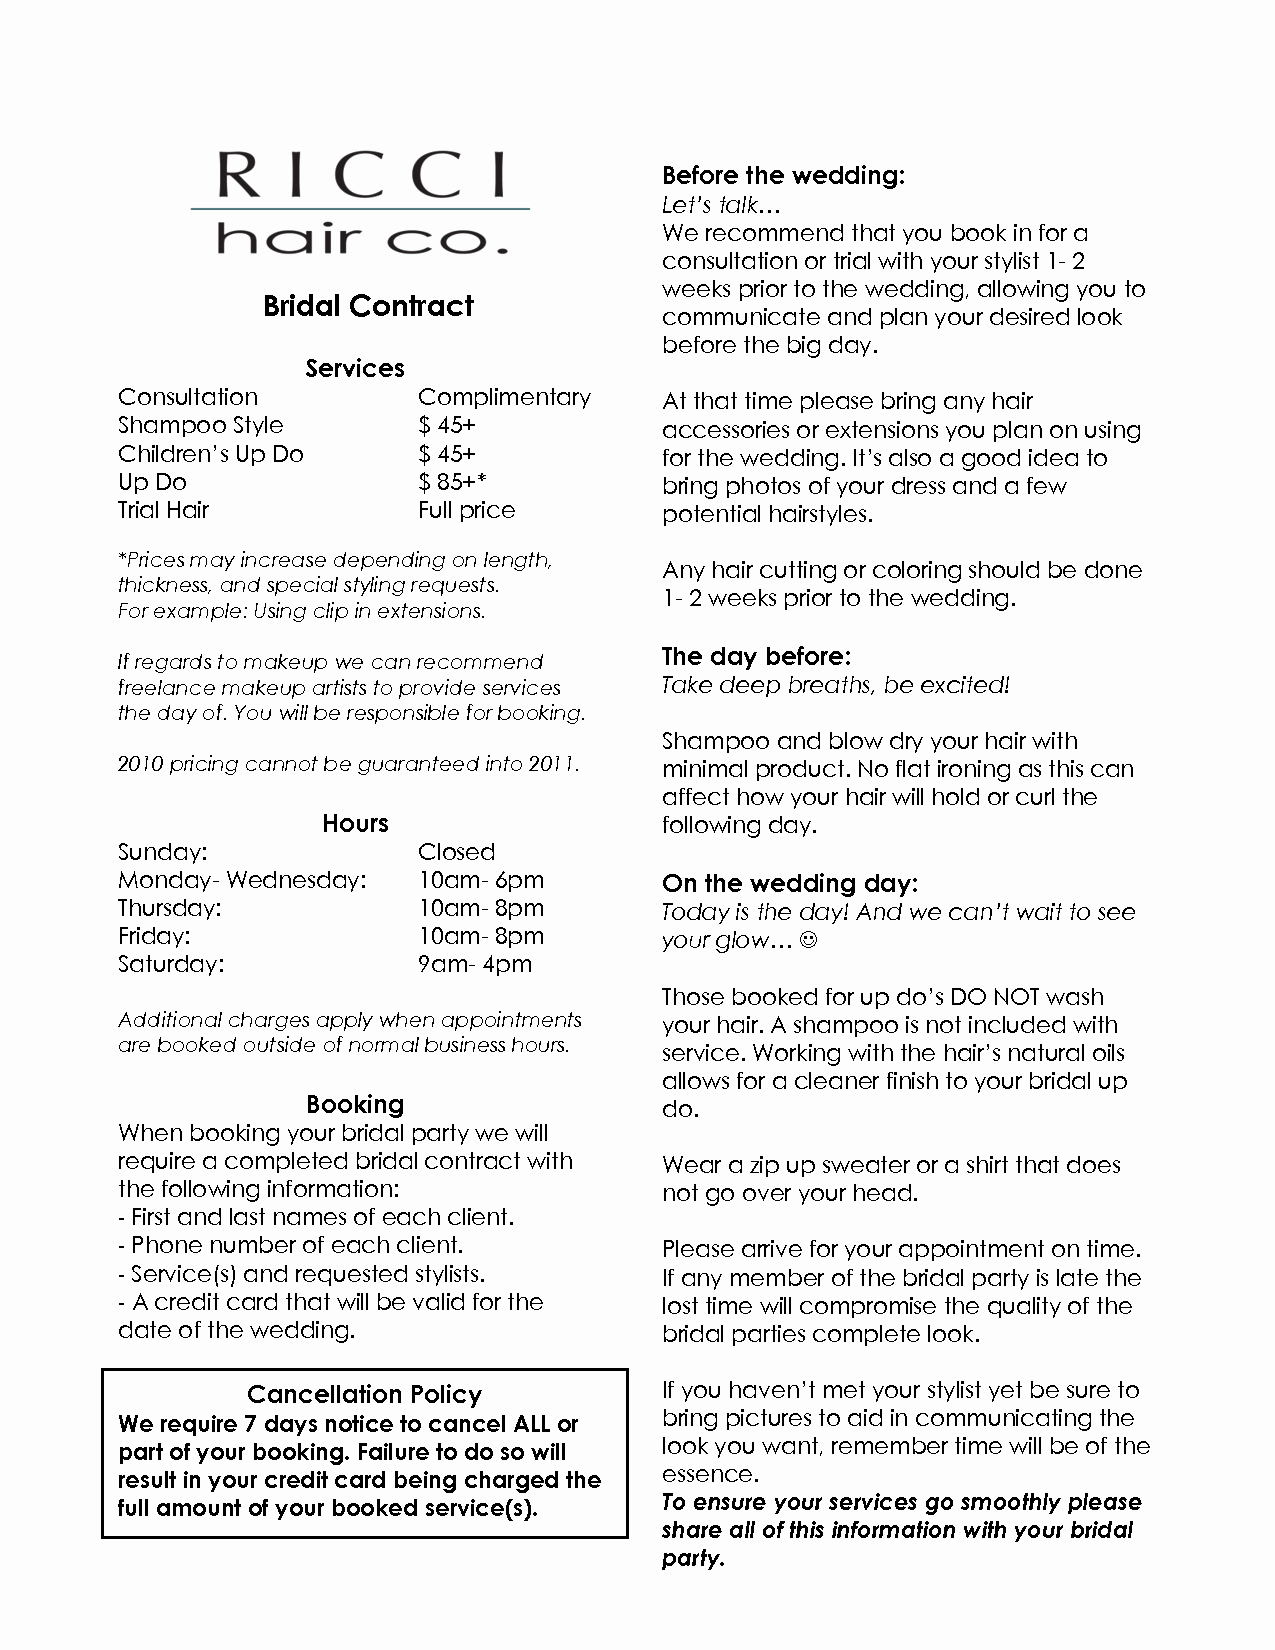 Hair Stylist Contract for Wedding Inspirational Bridalhaircotract